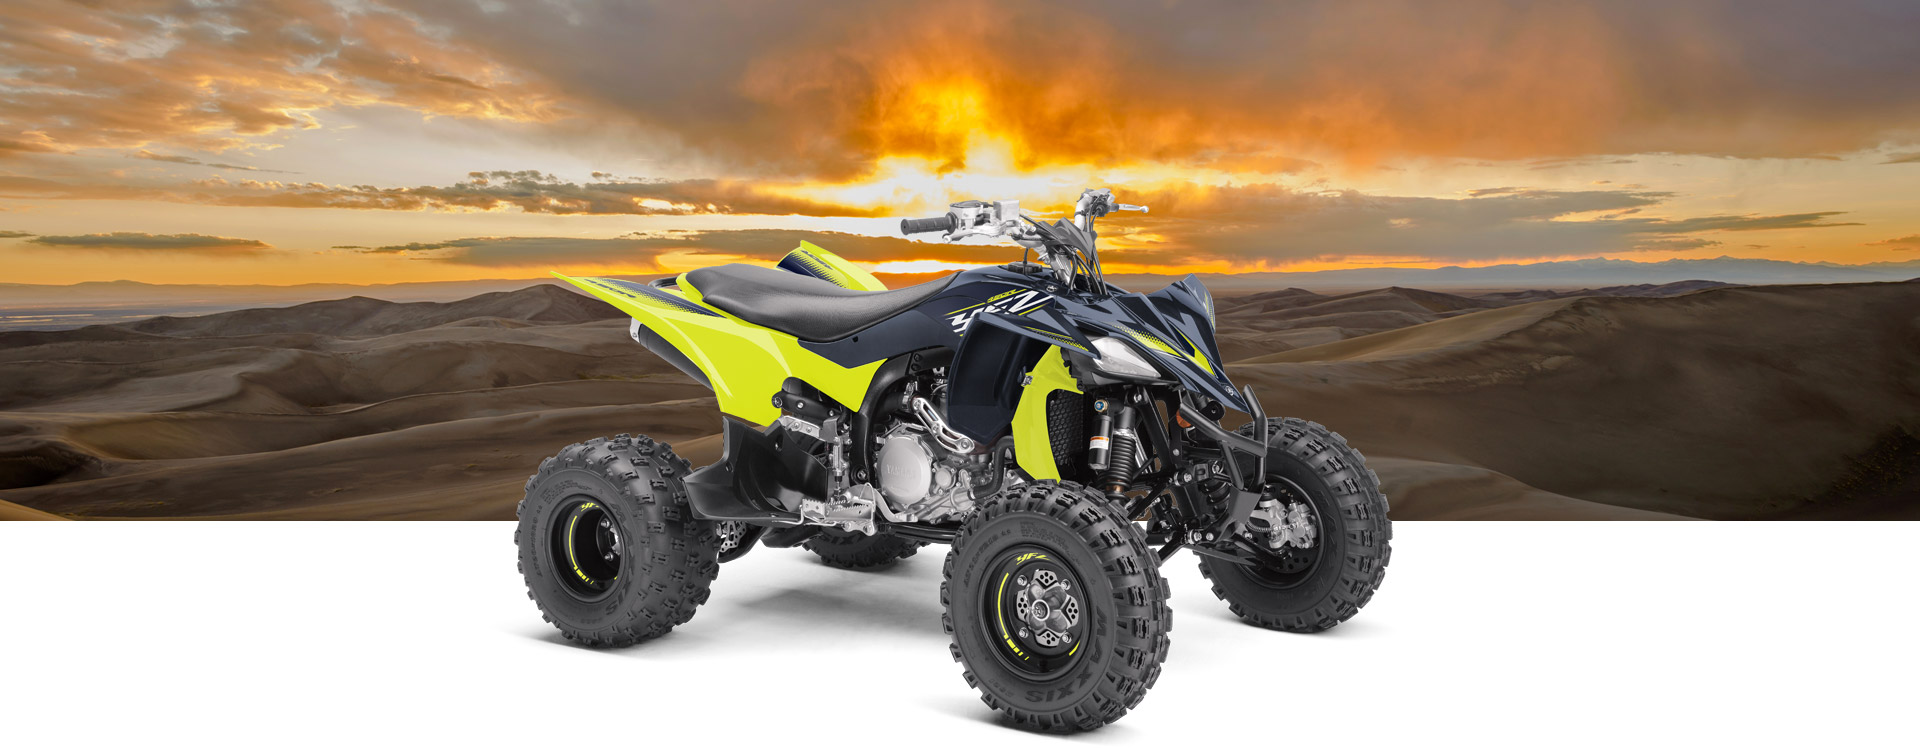 2020 Yamaha YFZ450R SE Sport ATV - Model Home